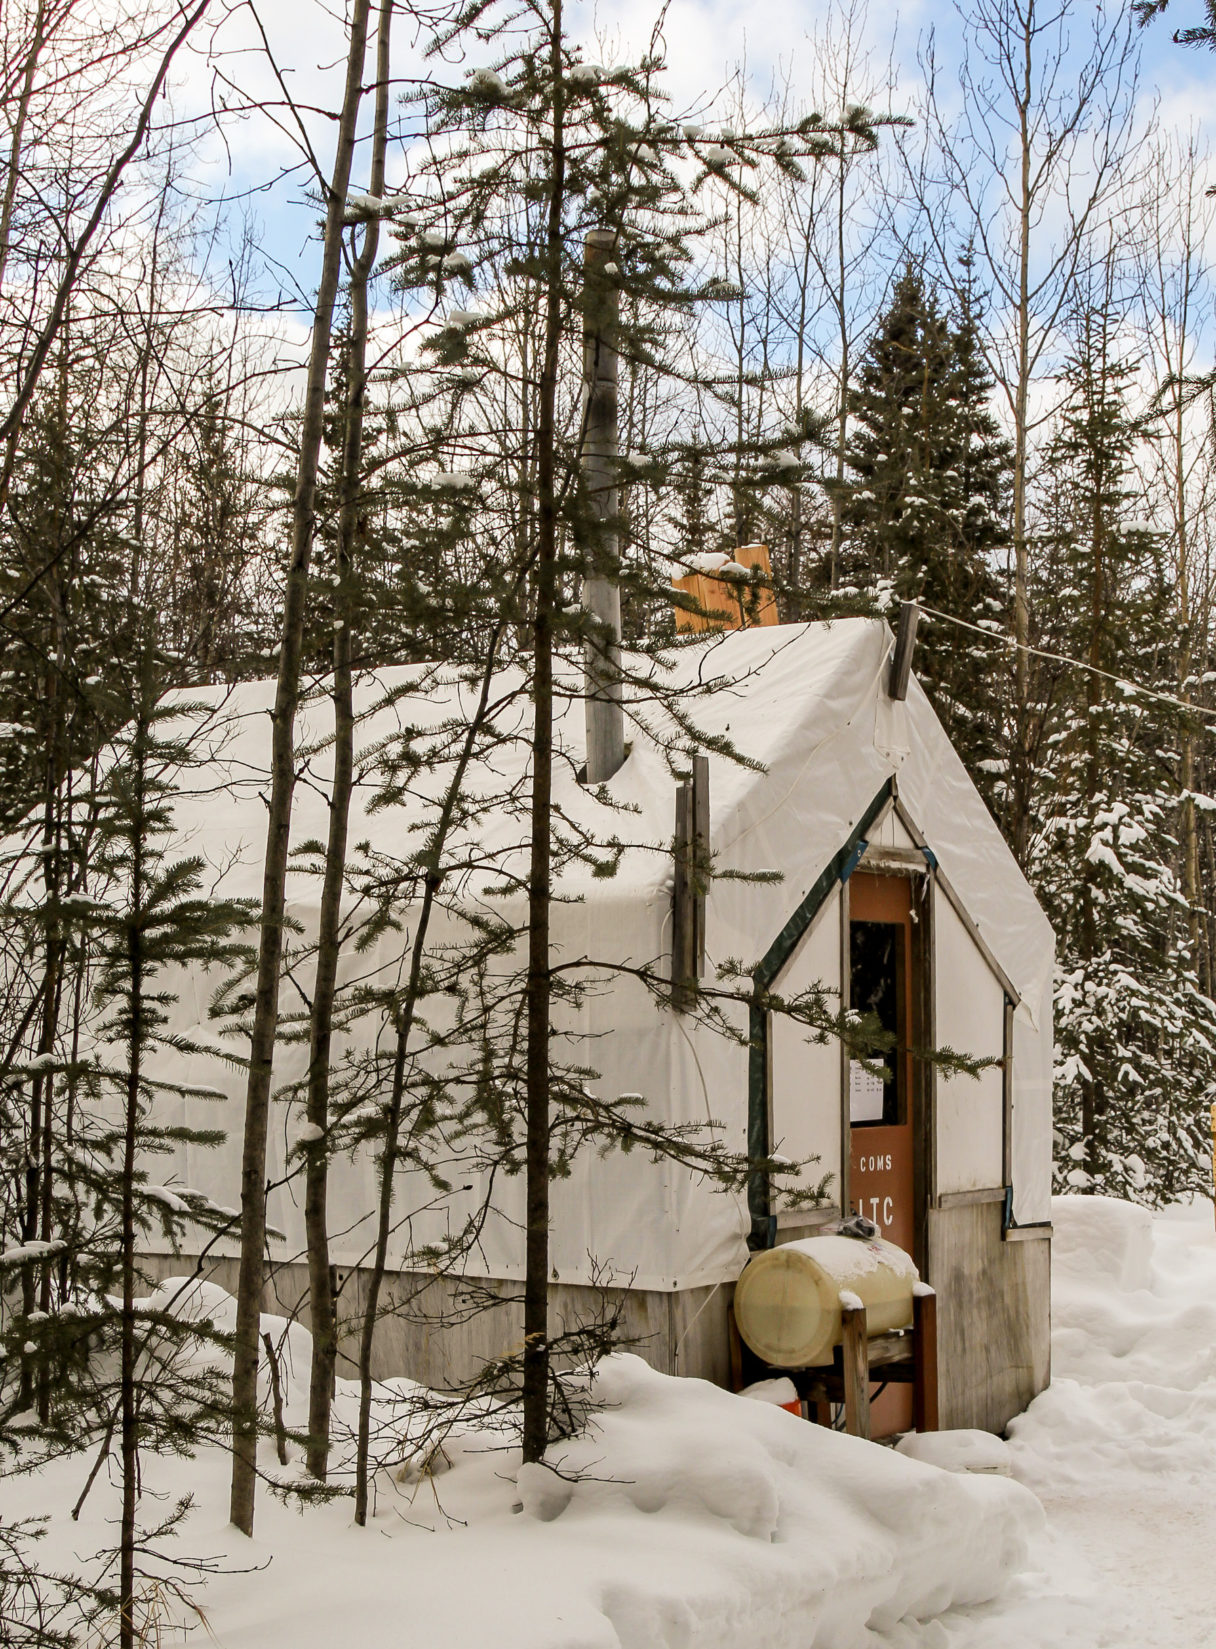 Small wall tent surrounded by a snowy forest at the remote Ophir checkpoint.